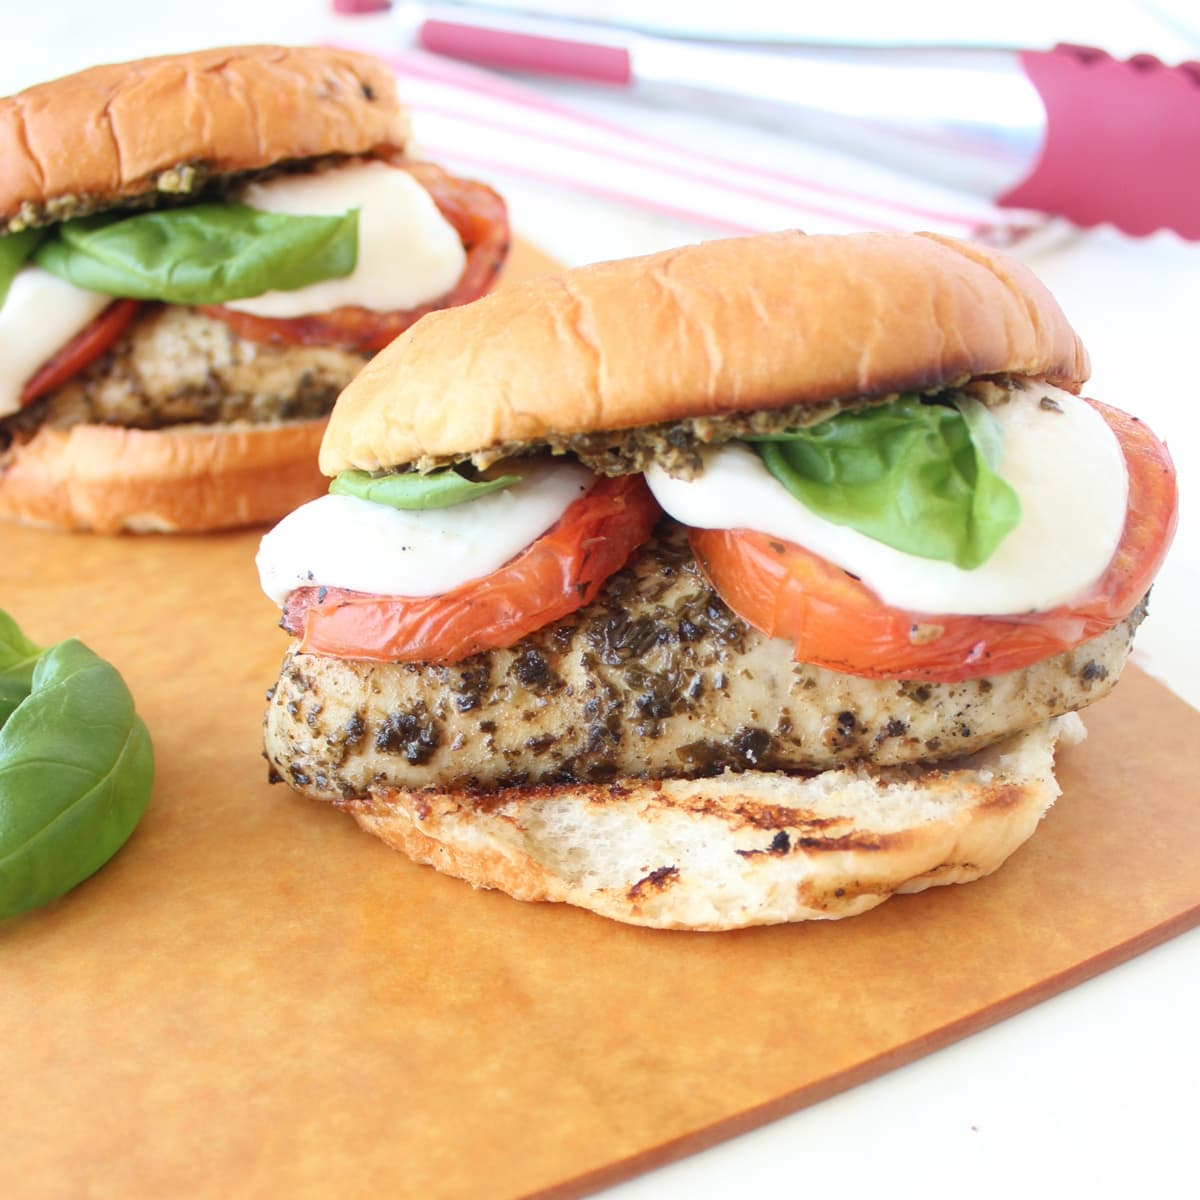 How to Make a Grilled Chicken Sandwich How to Make a Grilled Chicken Sandwich new images